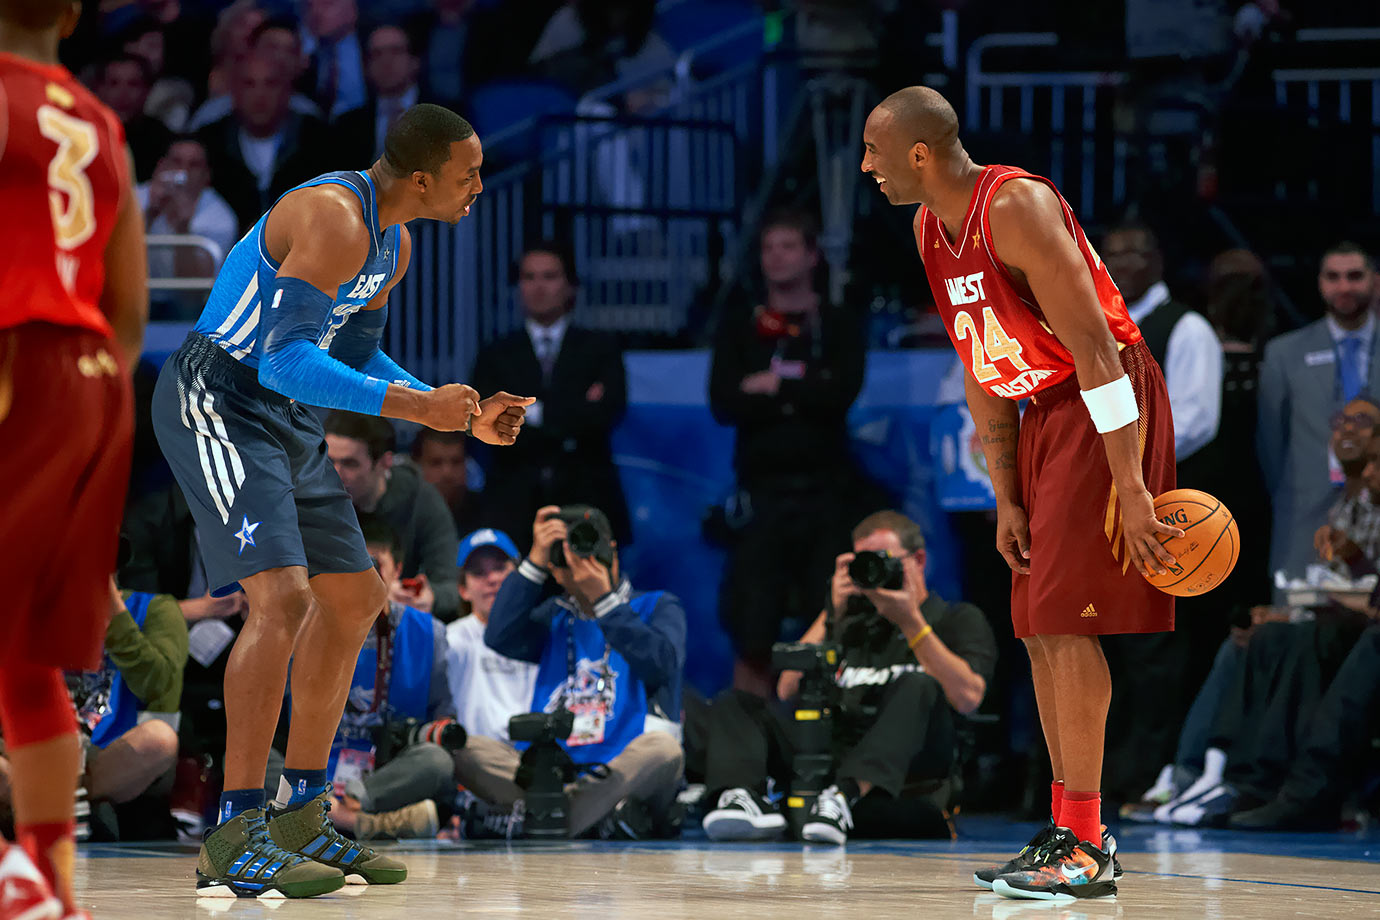 Feb. 26, 2012 — NBA All-Star Game